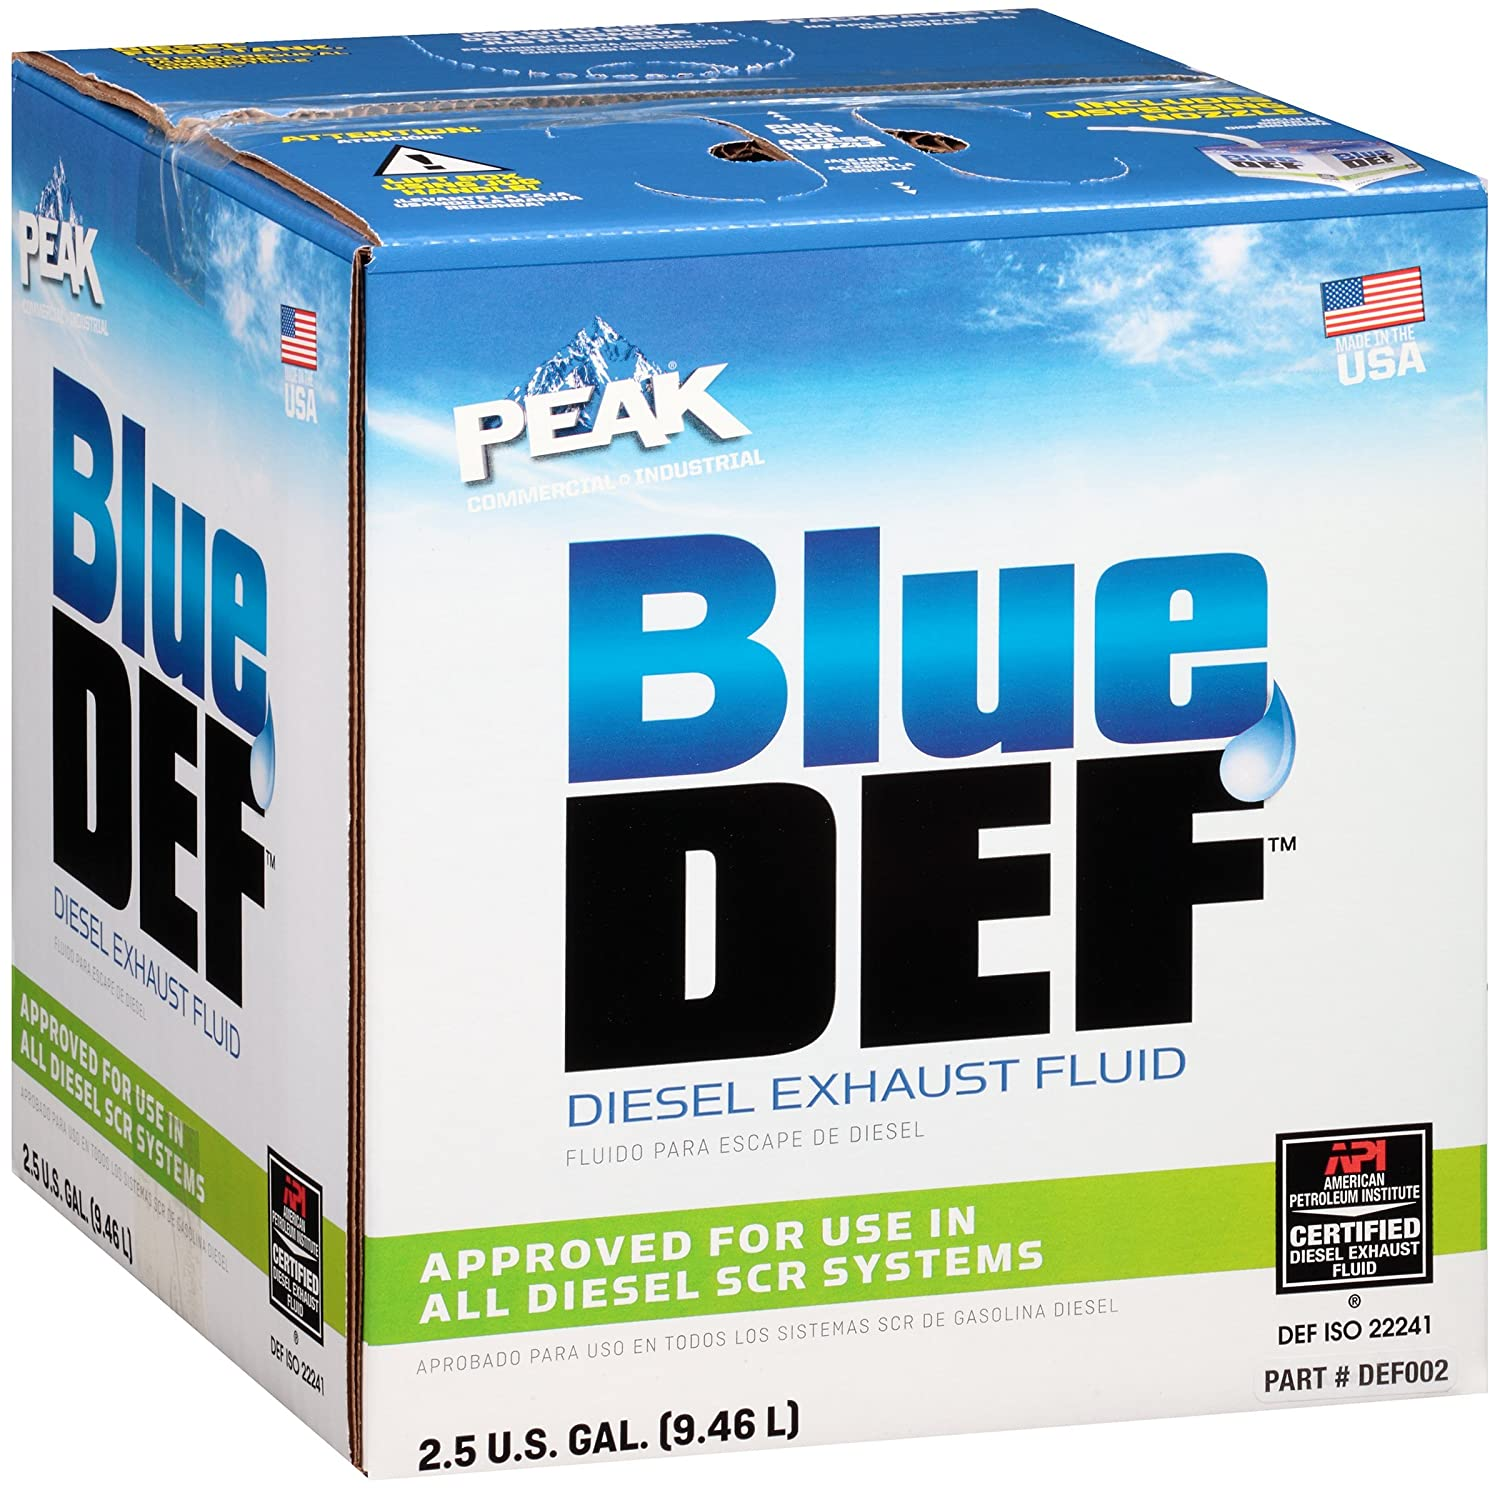 Diesel Exhaust Fluid >> Amazon Com Bluedef Def002 Diesel Exhaust Fluid 2 5 Gallon Jug